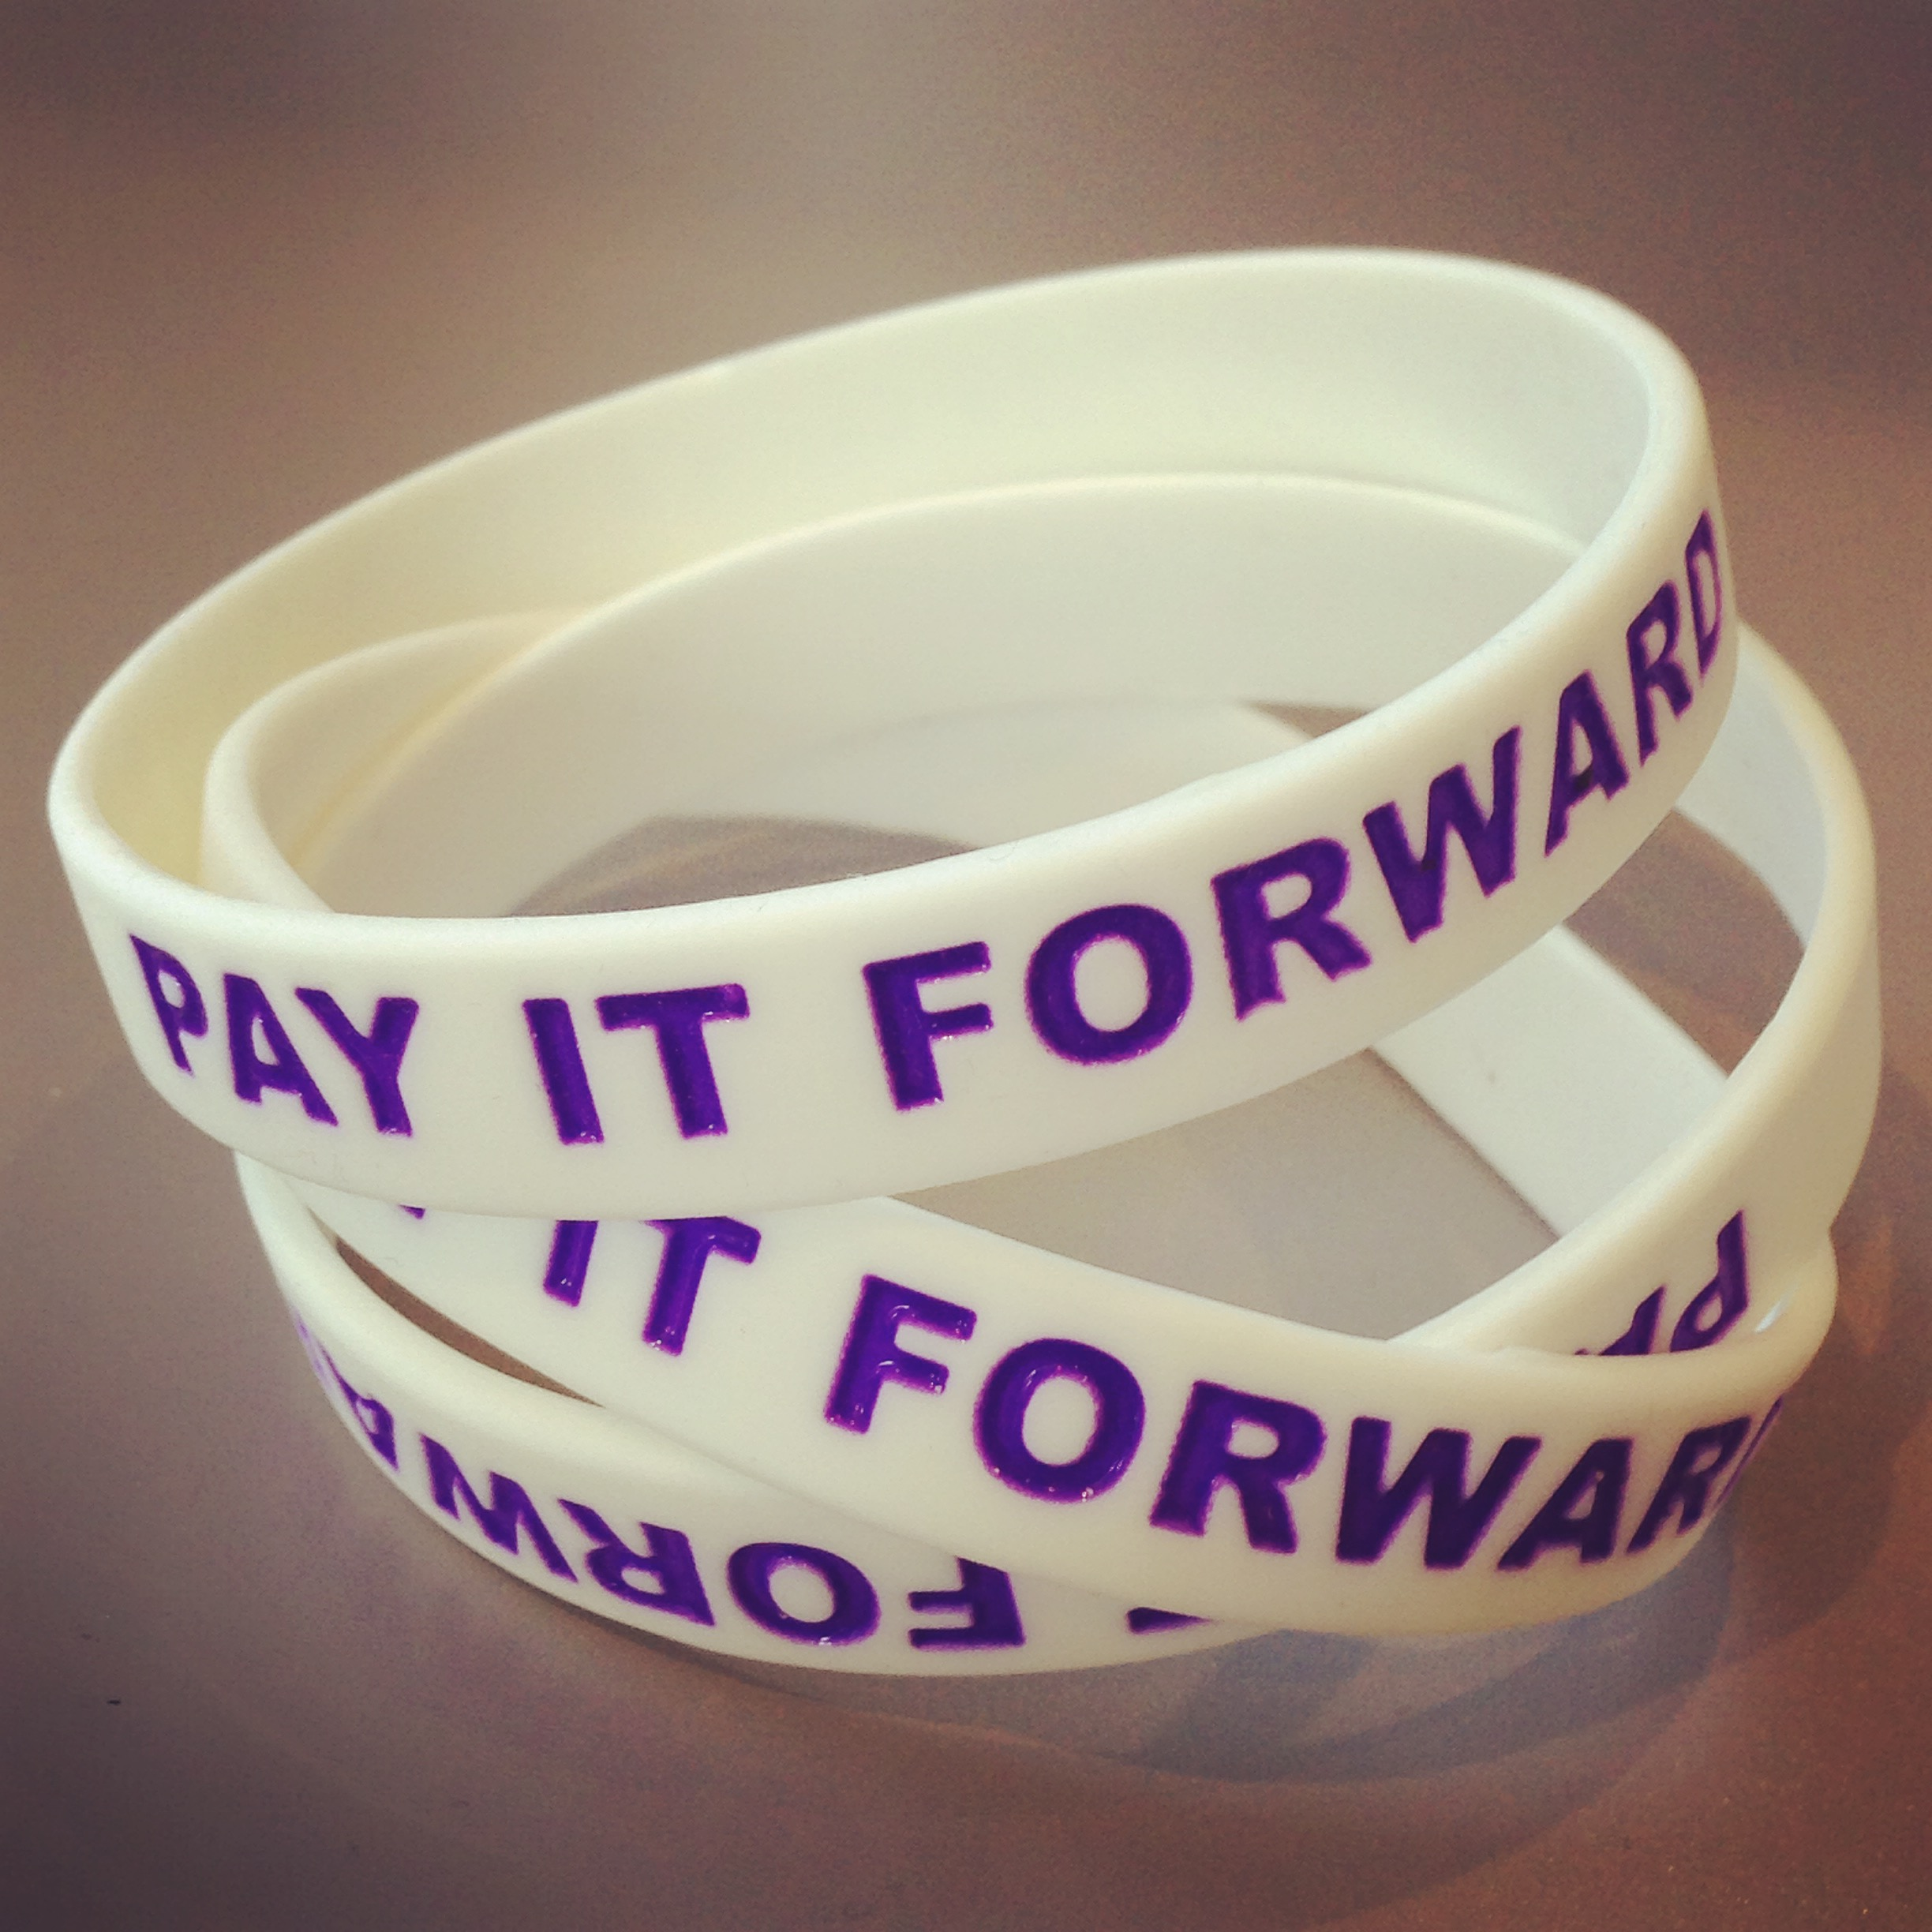 PayItFroward-Wristbands-RandomActsOfKindness